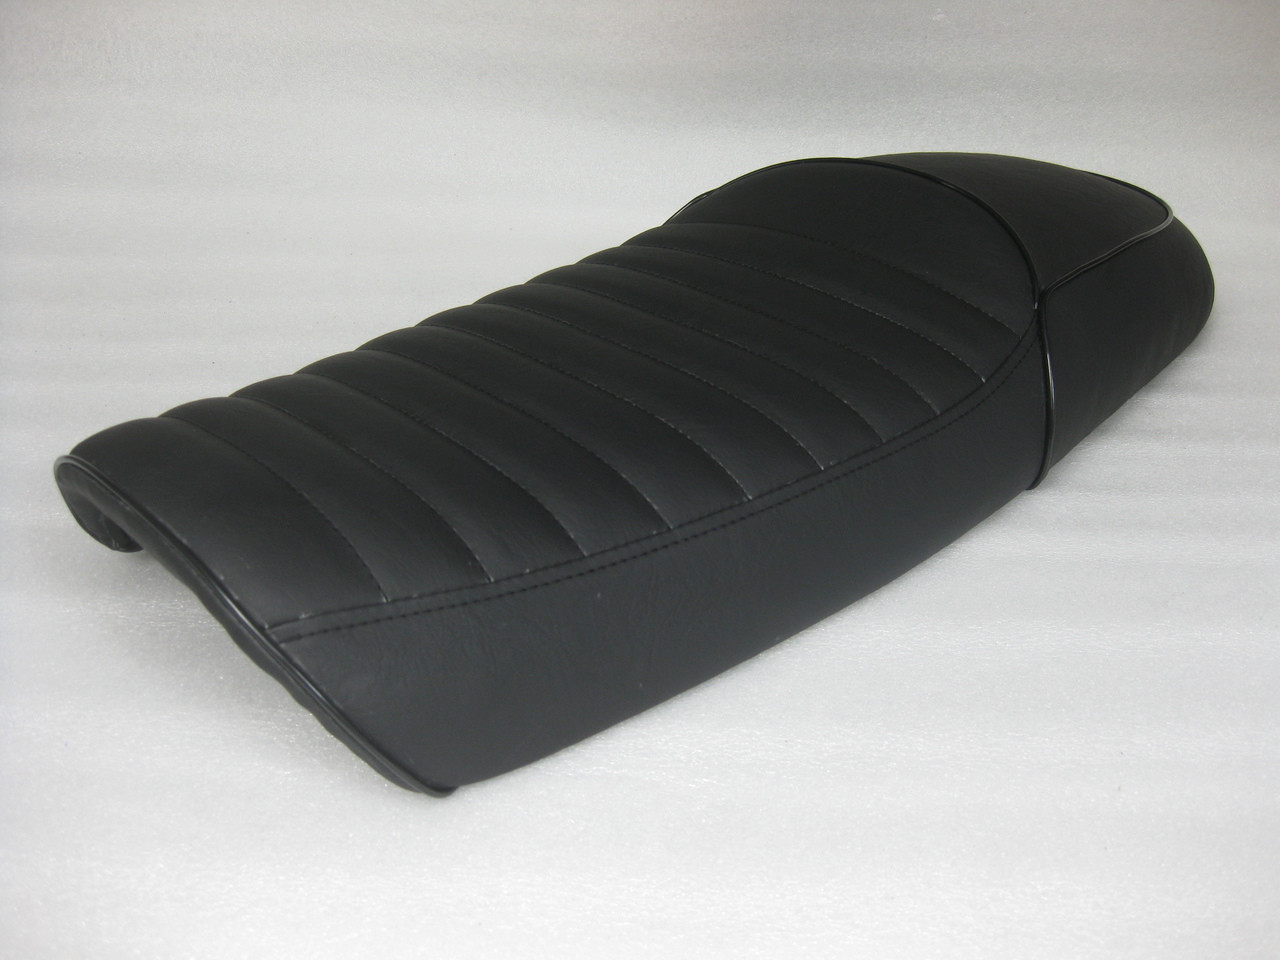 Honda CB400T HAWK CB400A CM400 Cafe Racer Motorcycle Seat with modified seat pan #4390